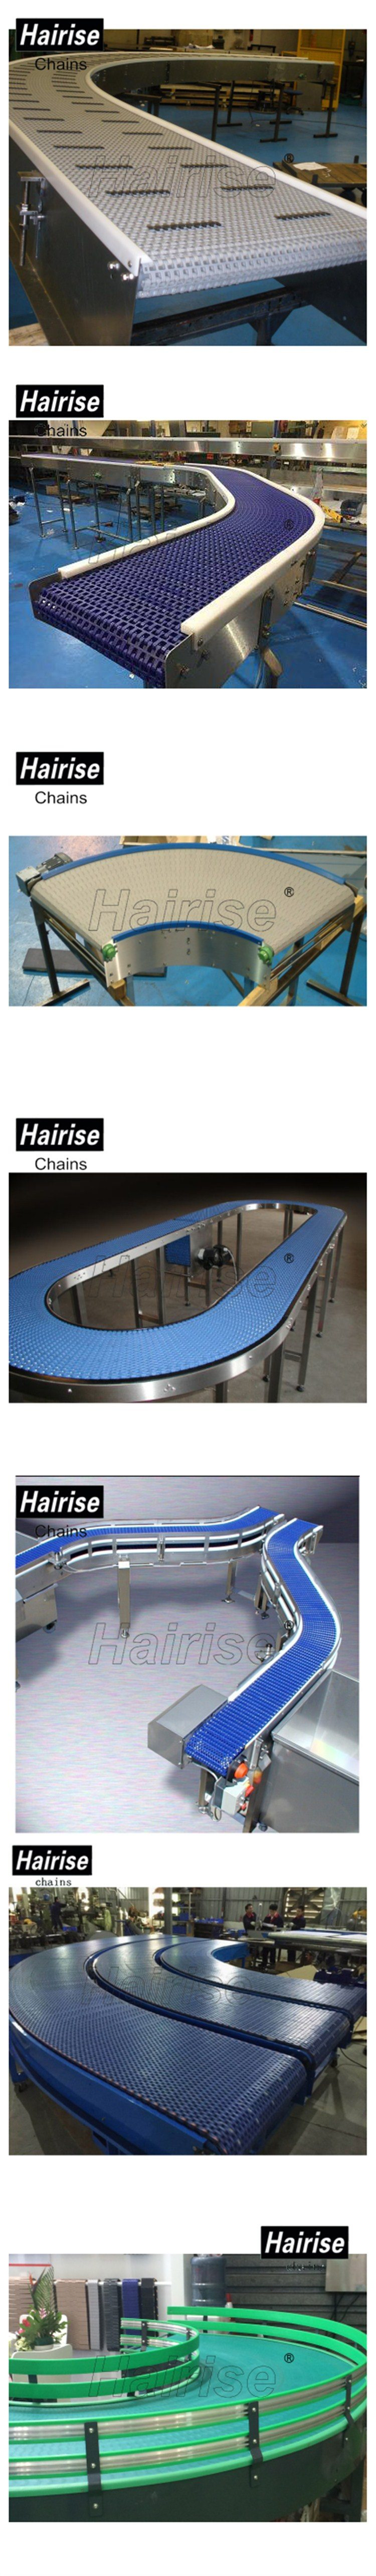 curved-conveyors